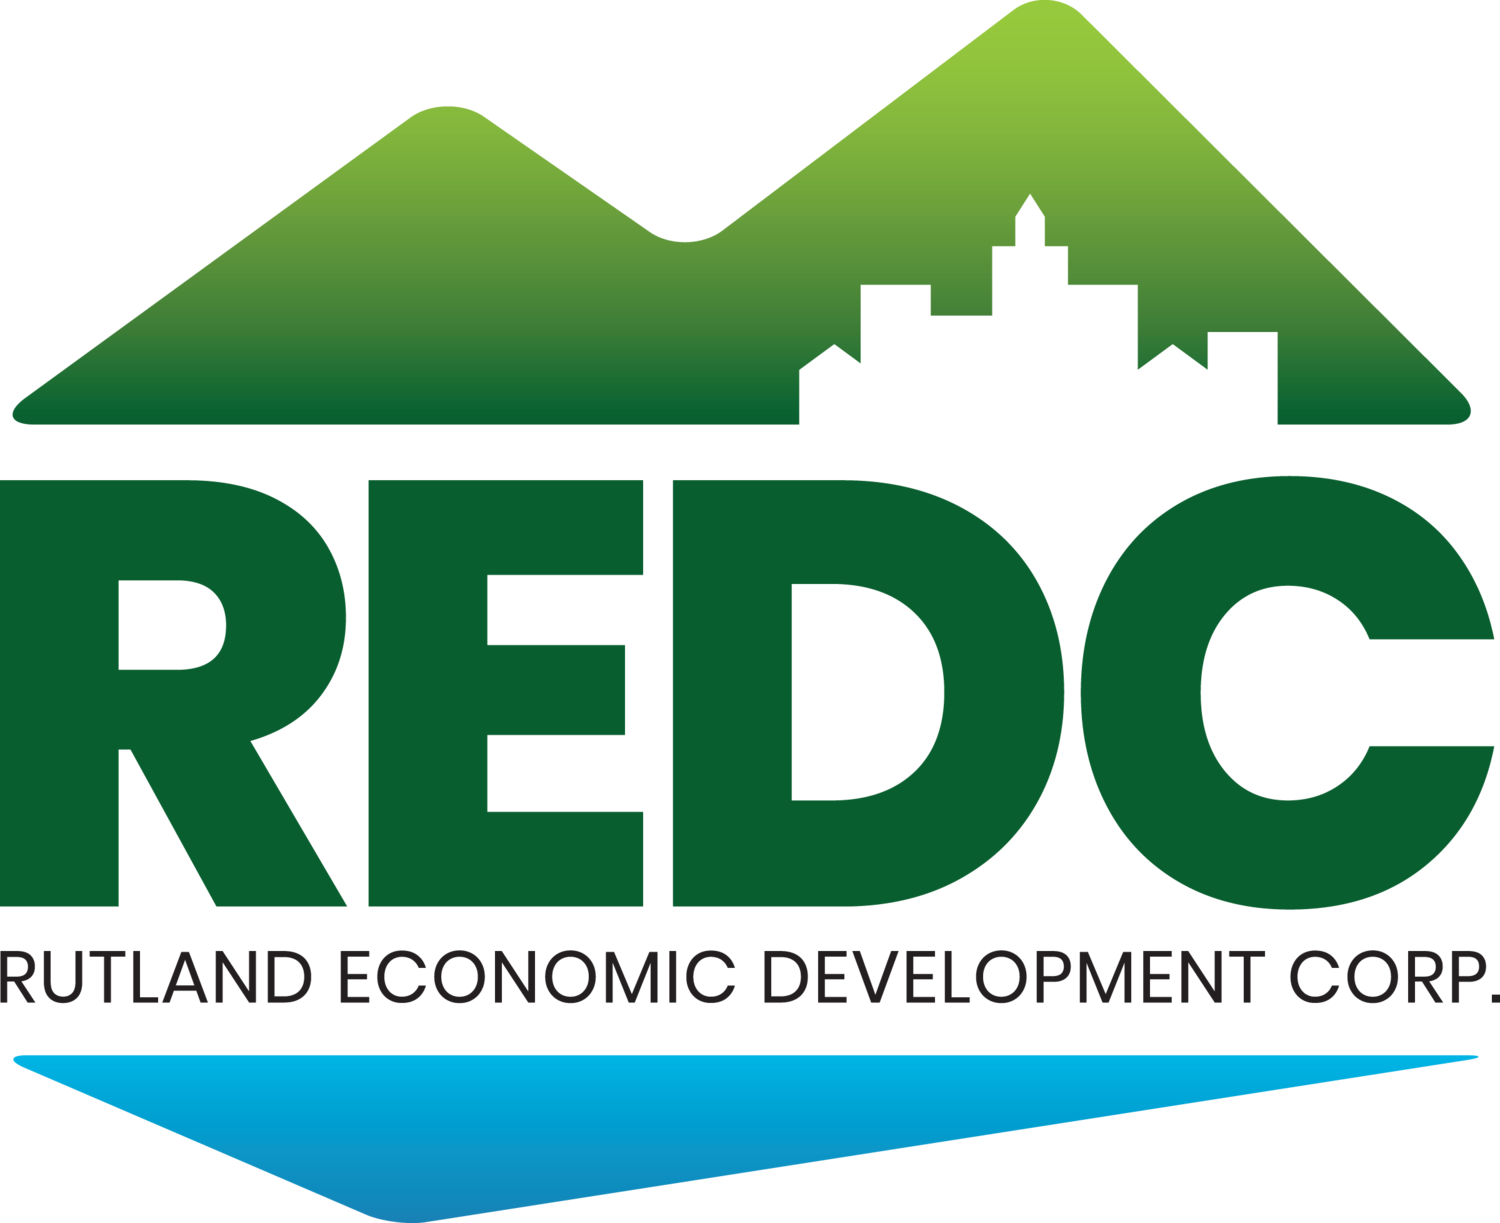 REDC - Rutland Economic Development Corporation